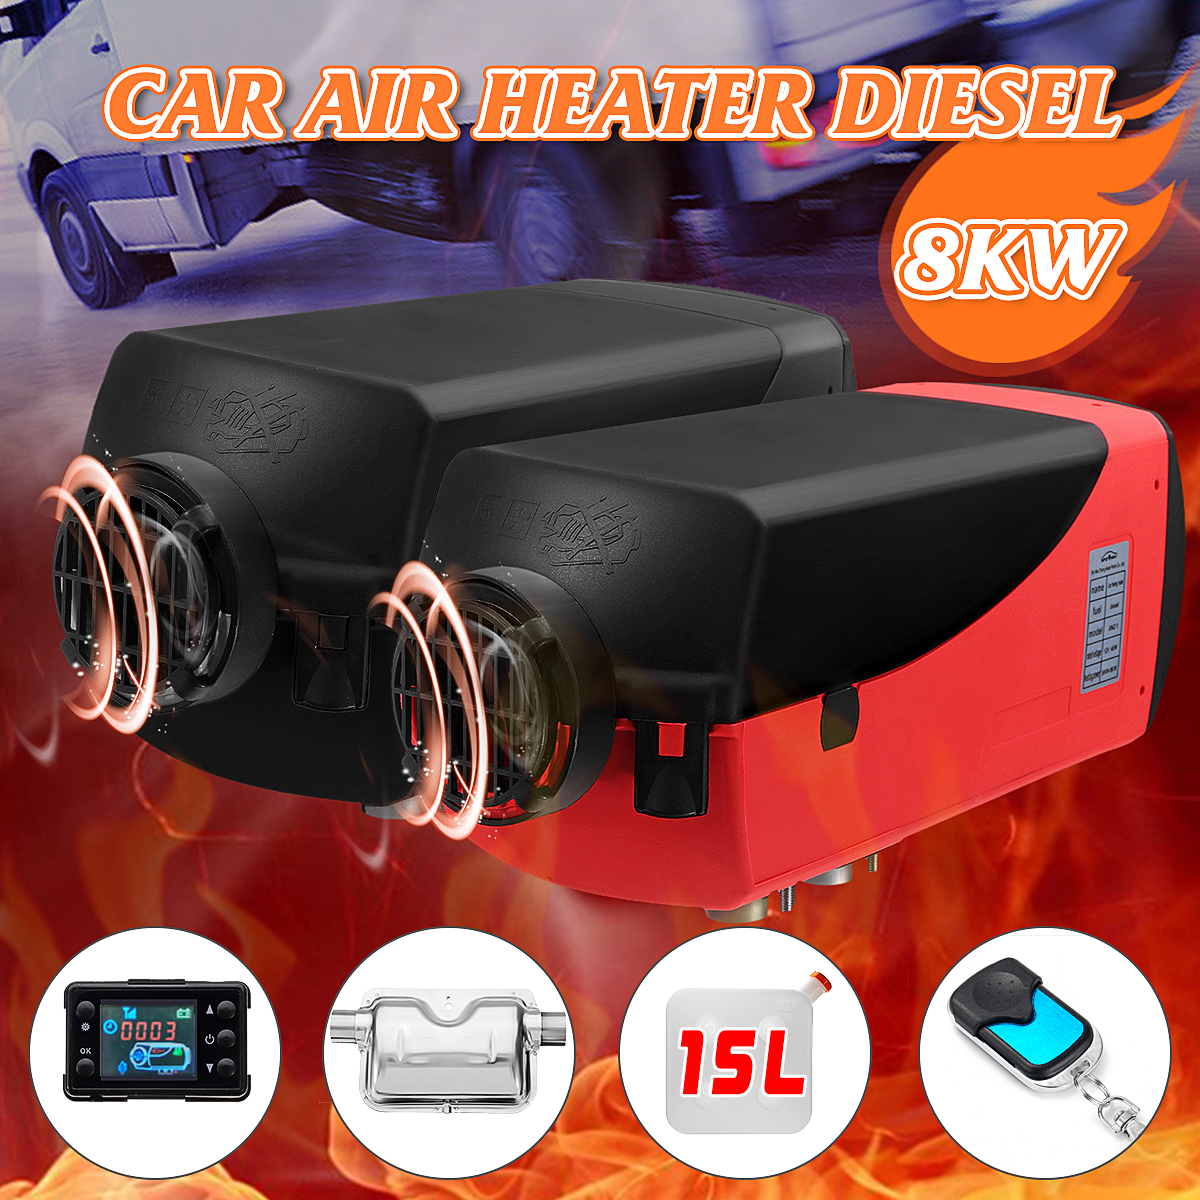 12V 8kw Diesel Parking Air Heater with 15L Fuel Tank Silencer & Remote Control